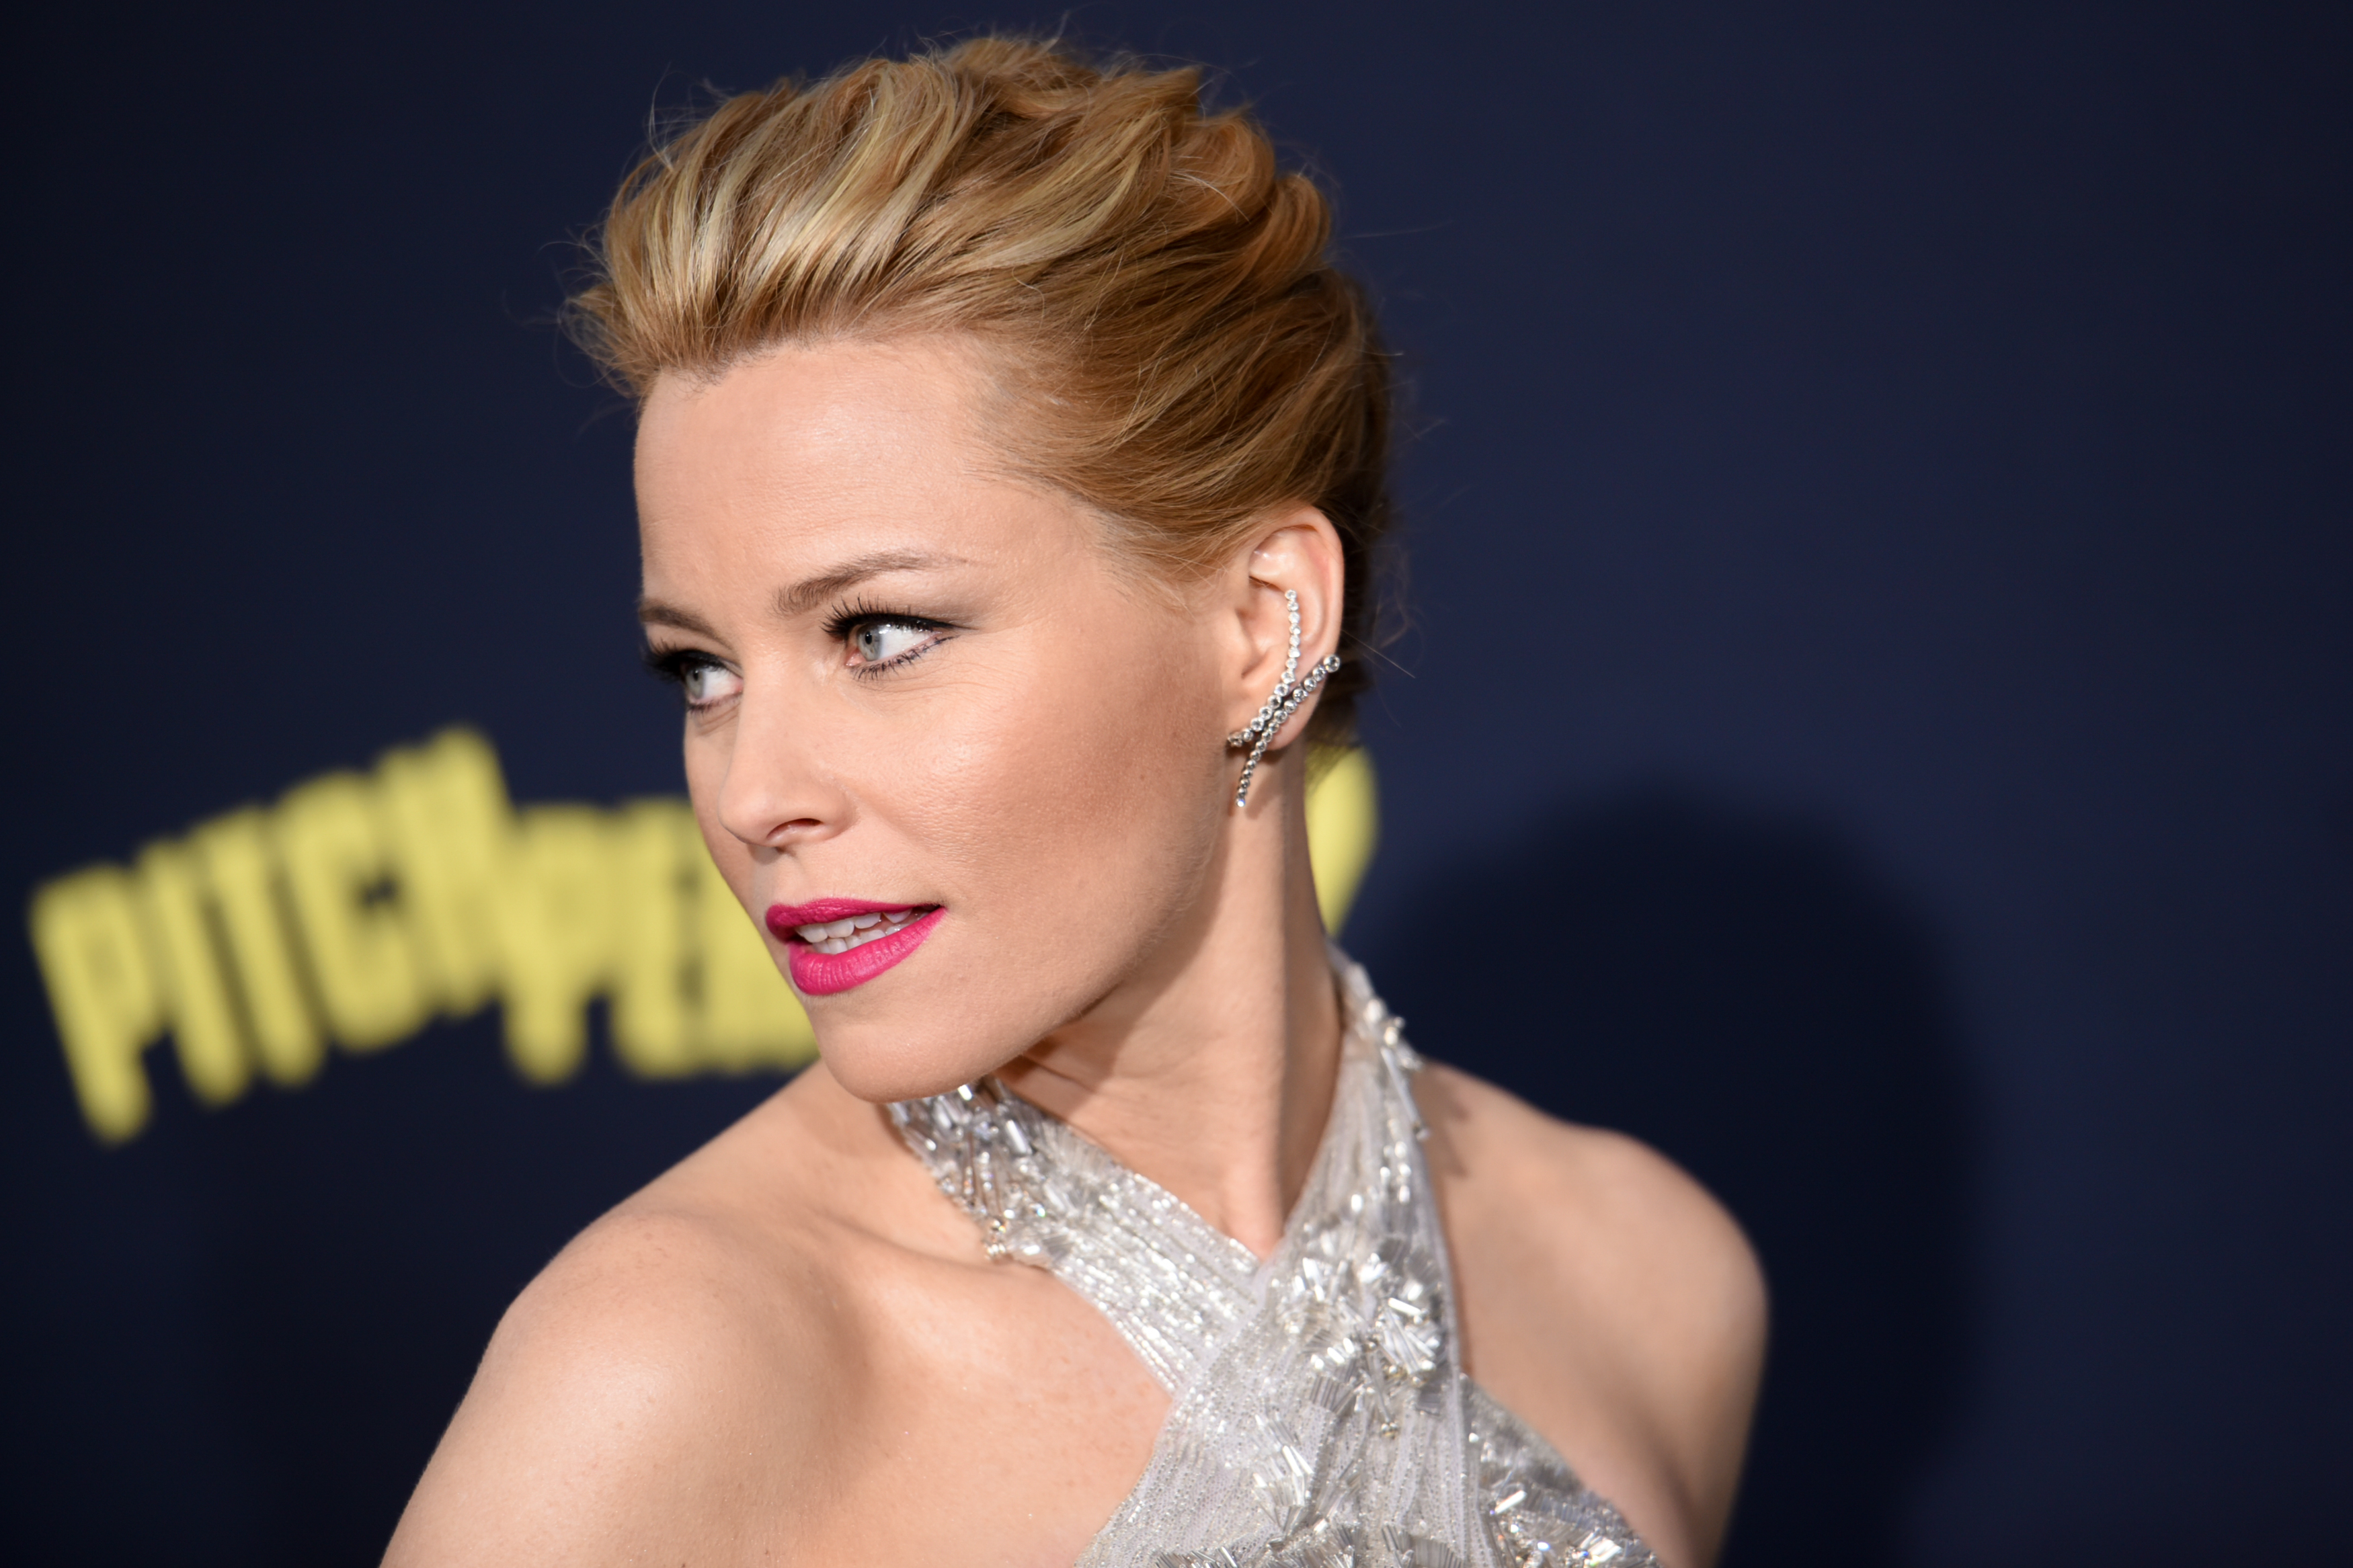 Elizabeth Banks at the Pitch Perfect 2 world premiere in Los Angeles.